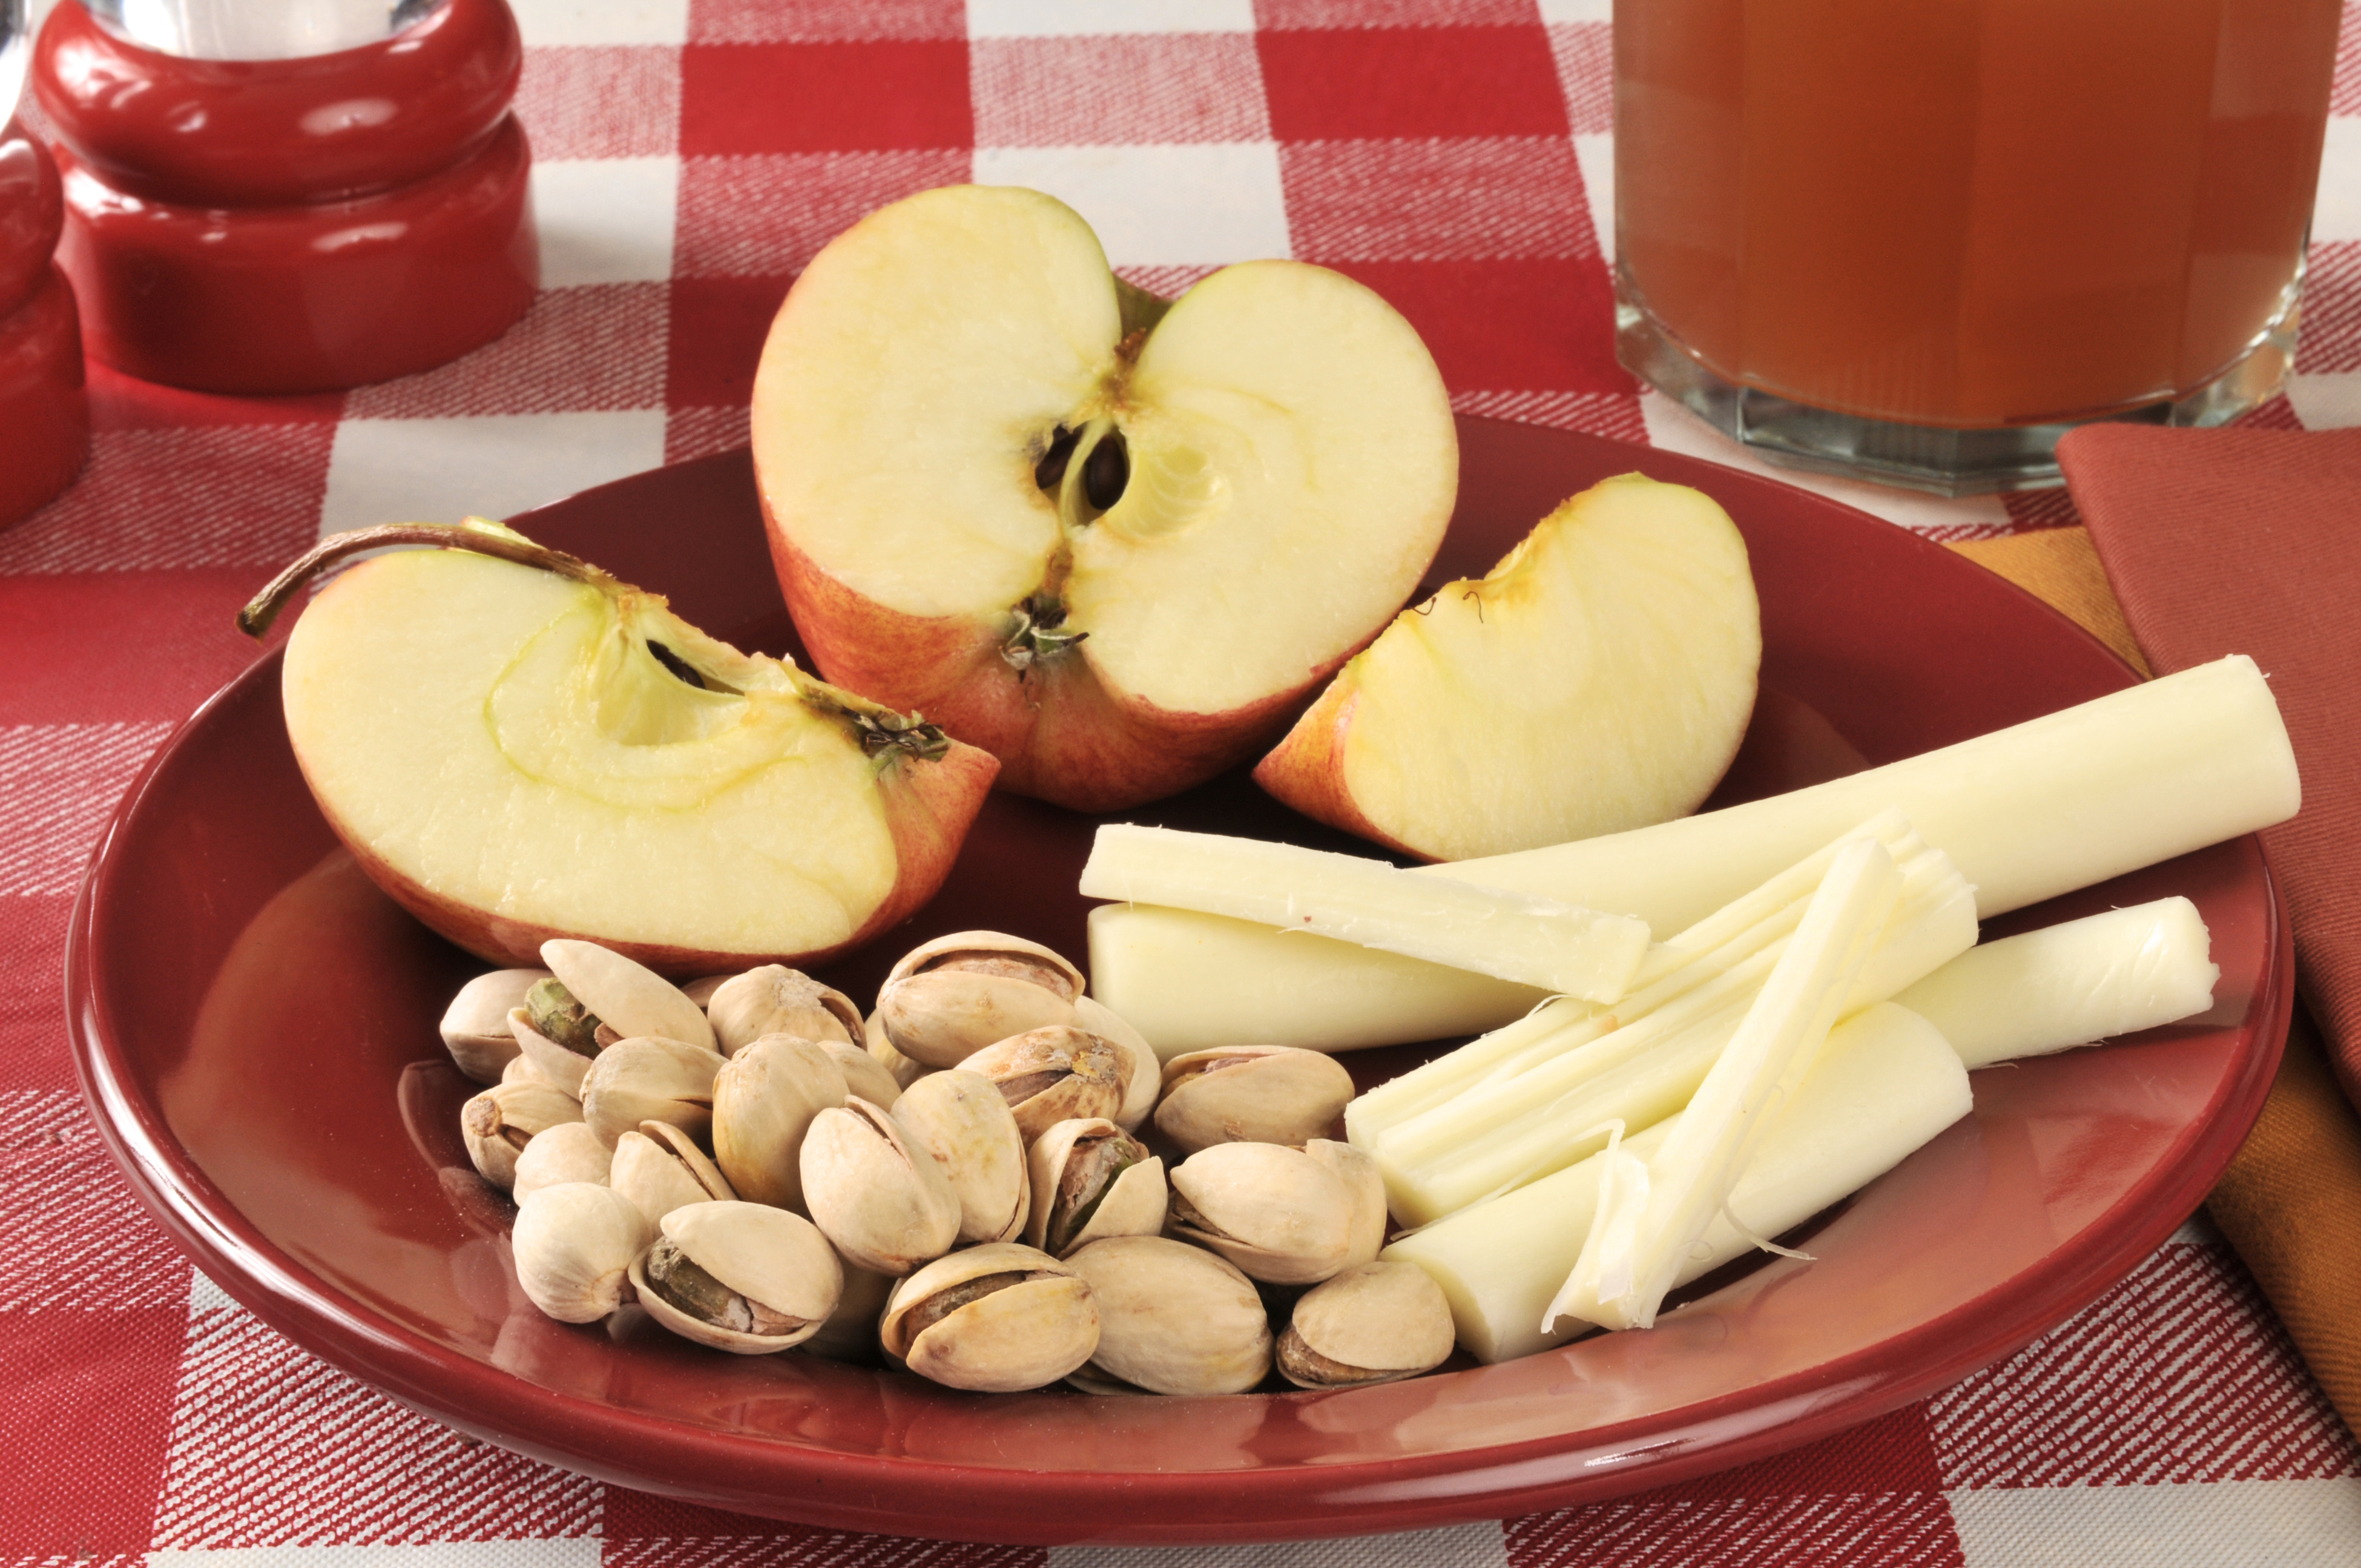 Dietitian Picks: Top 11 Healthy Snack Ideas When You Have No Time